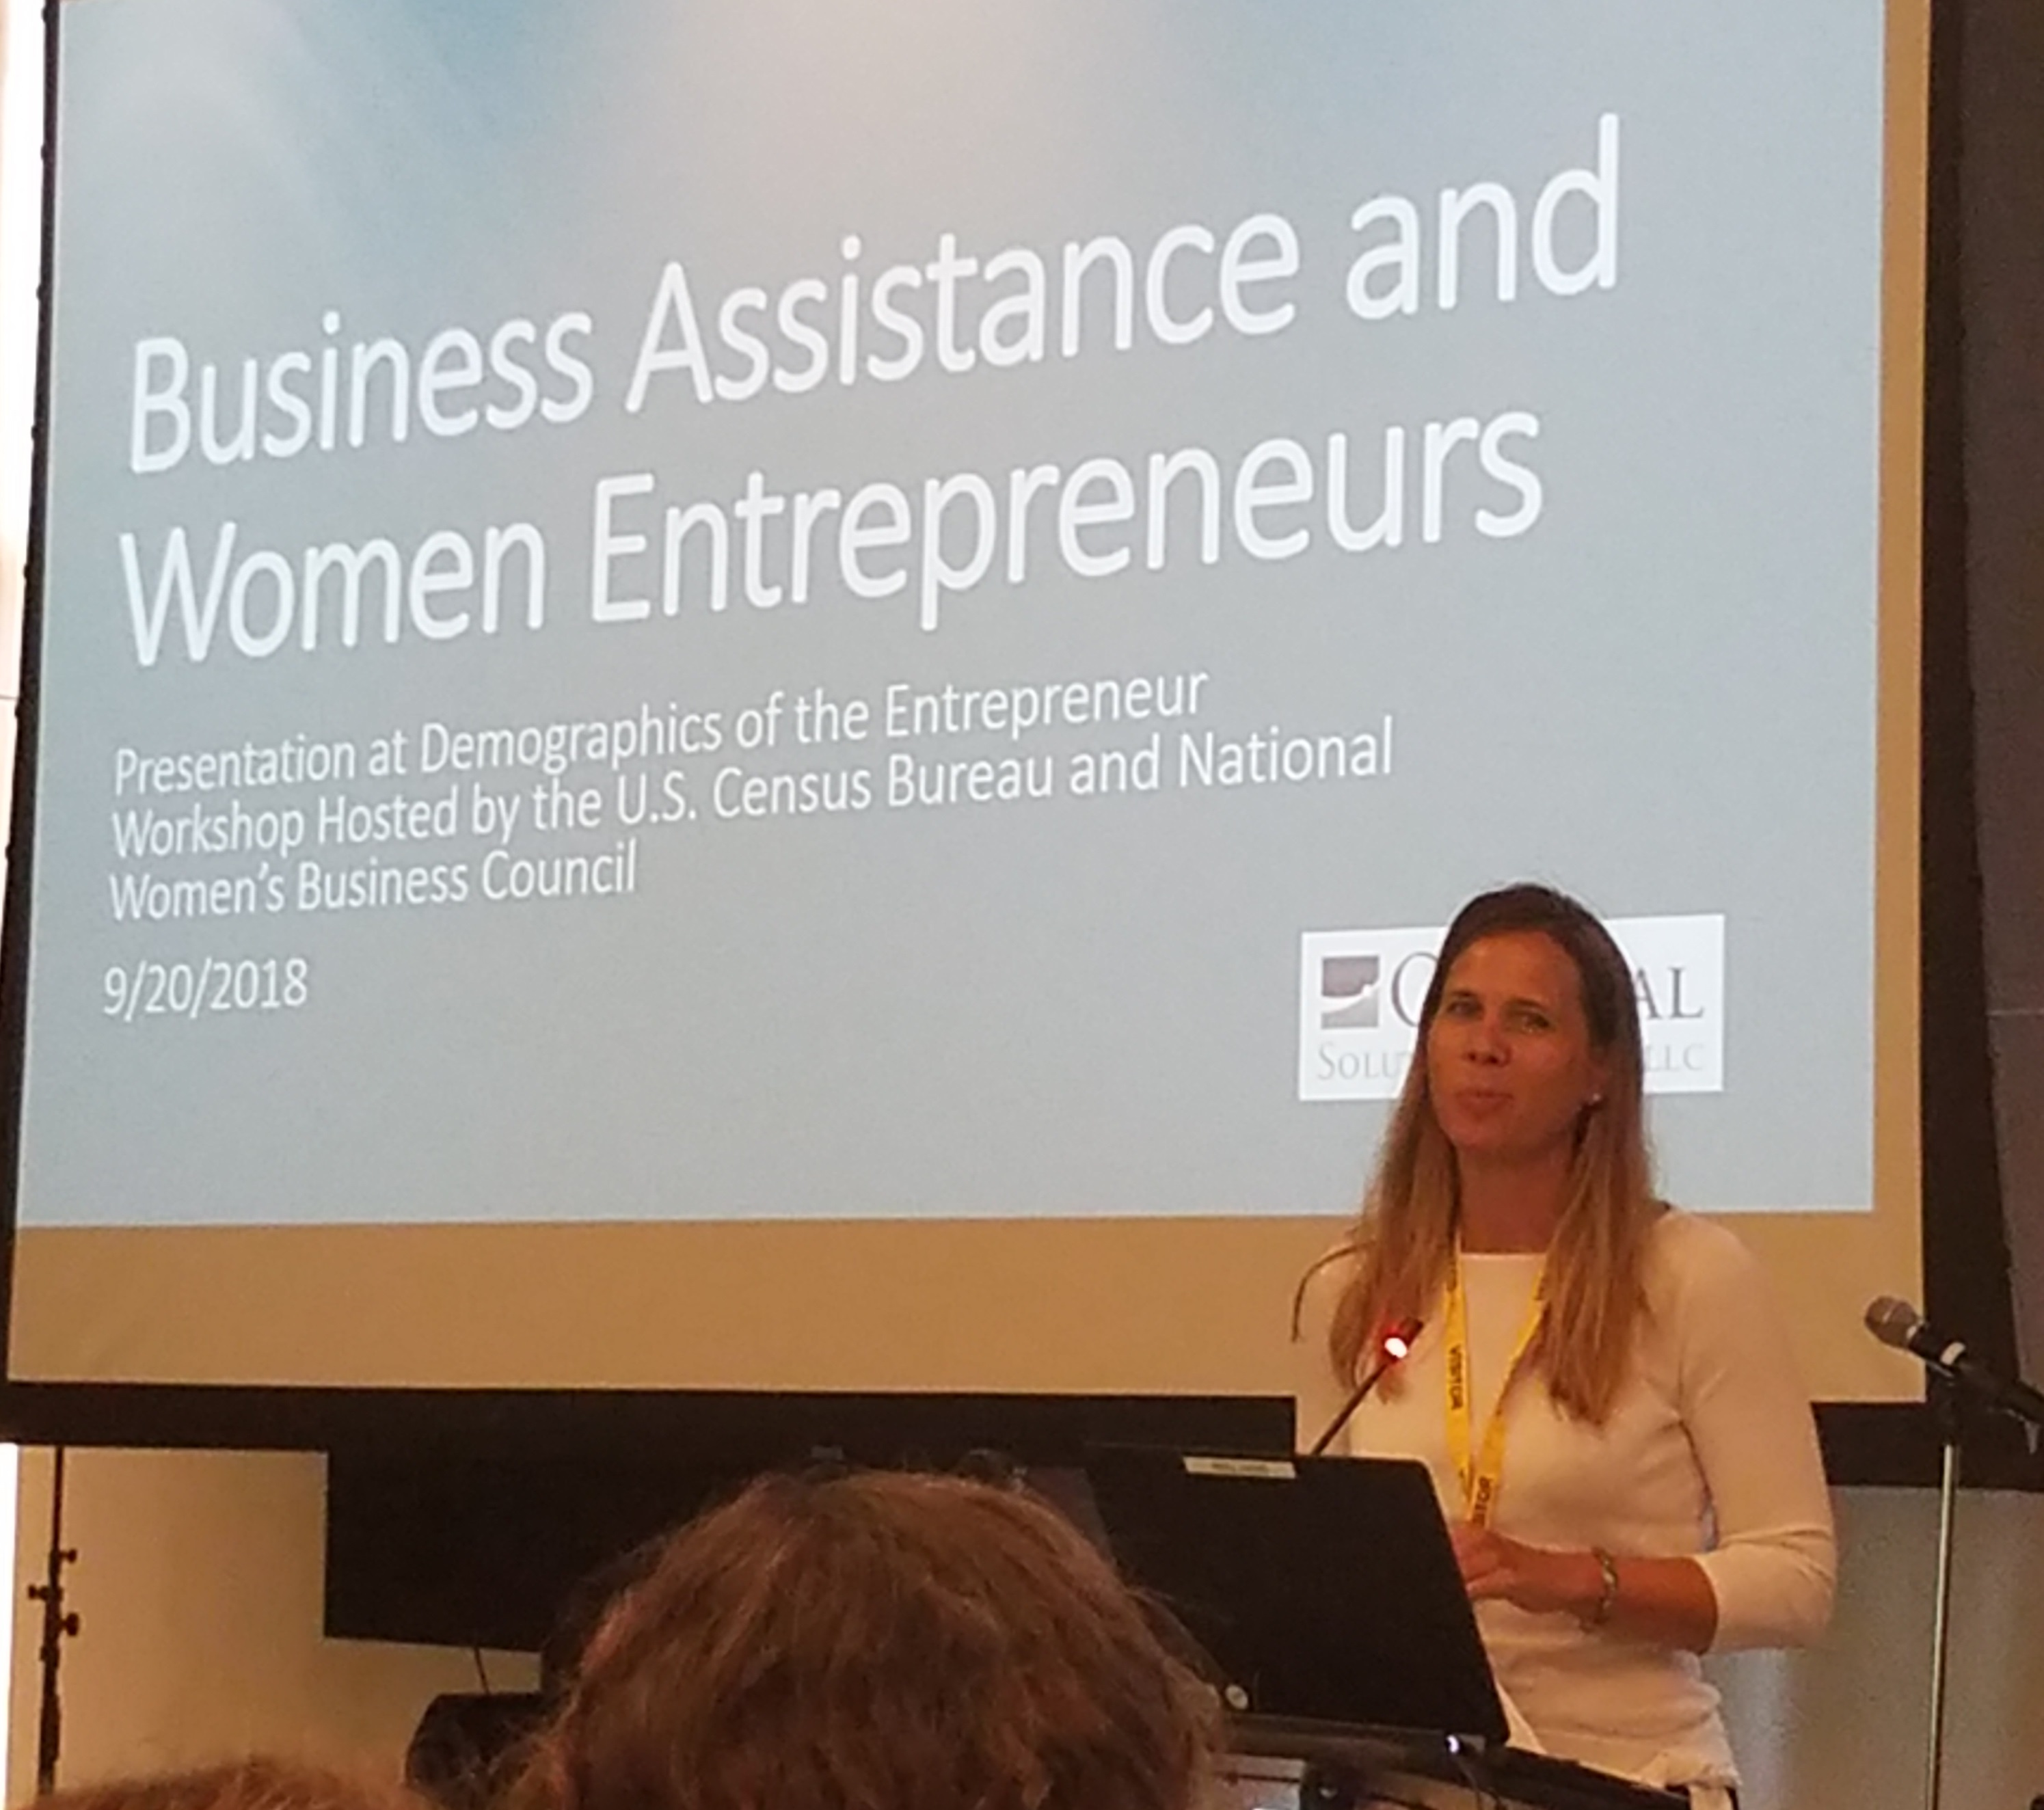 Dr. Jennifer Auer presents findings on women's entrepreneurship at the Demographics of the Entrepreneur Workshop in Suitland, Md.